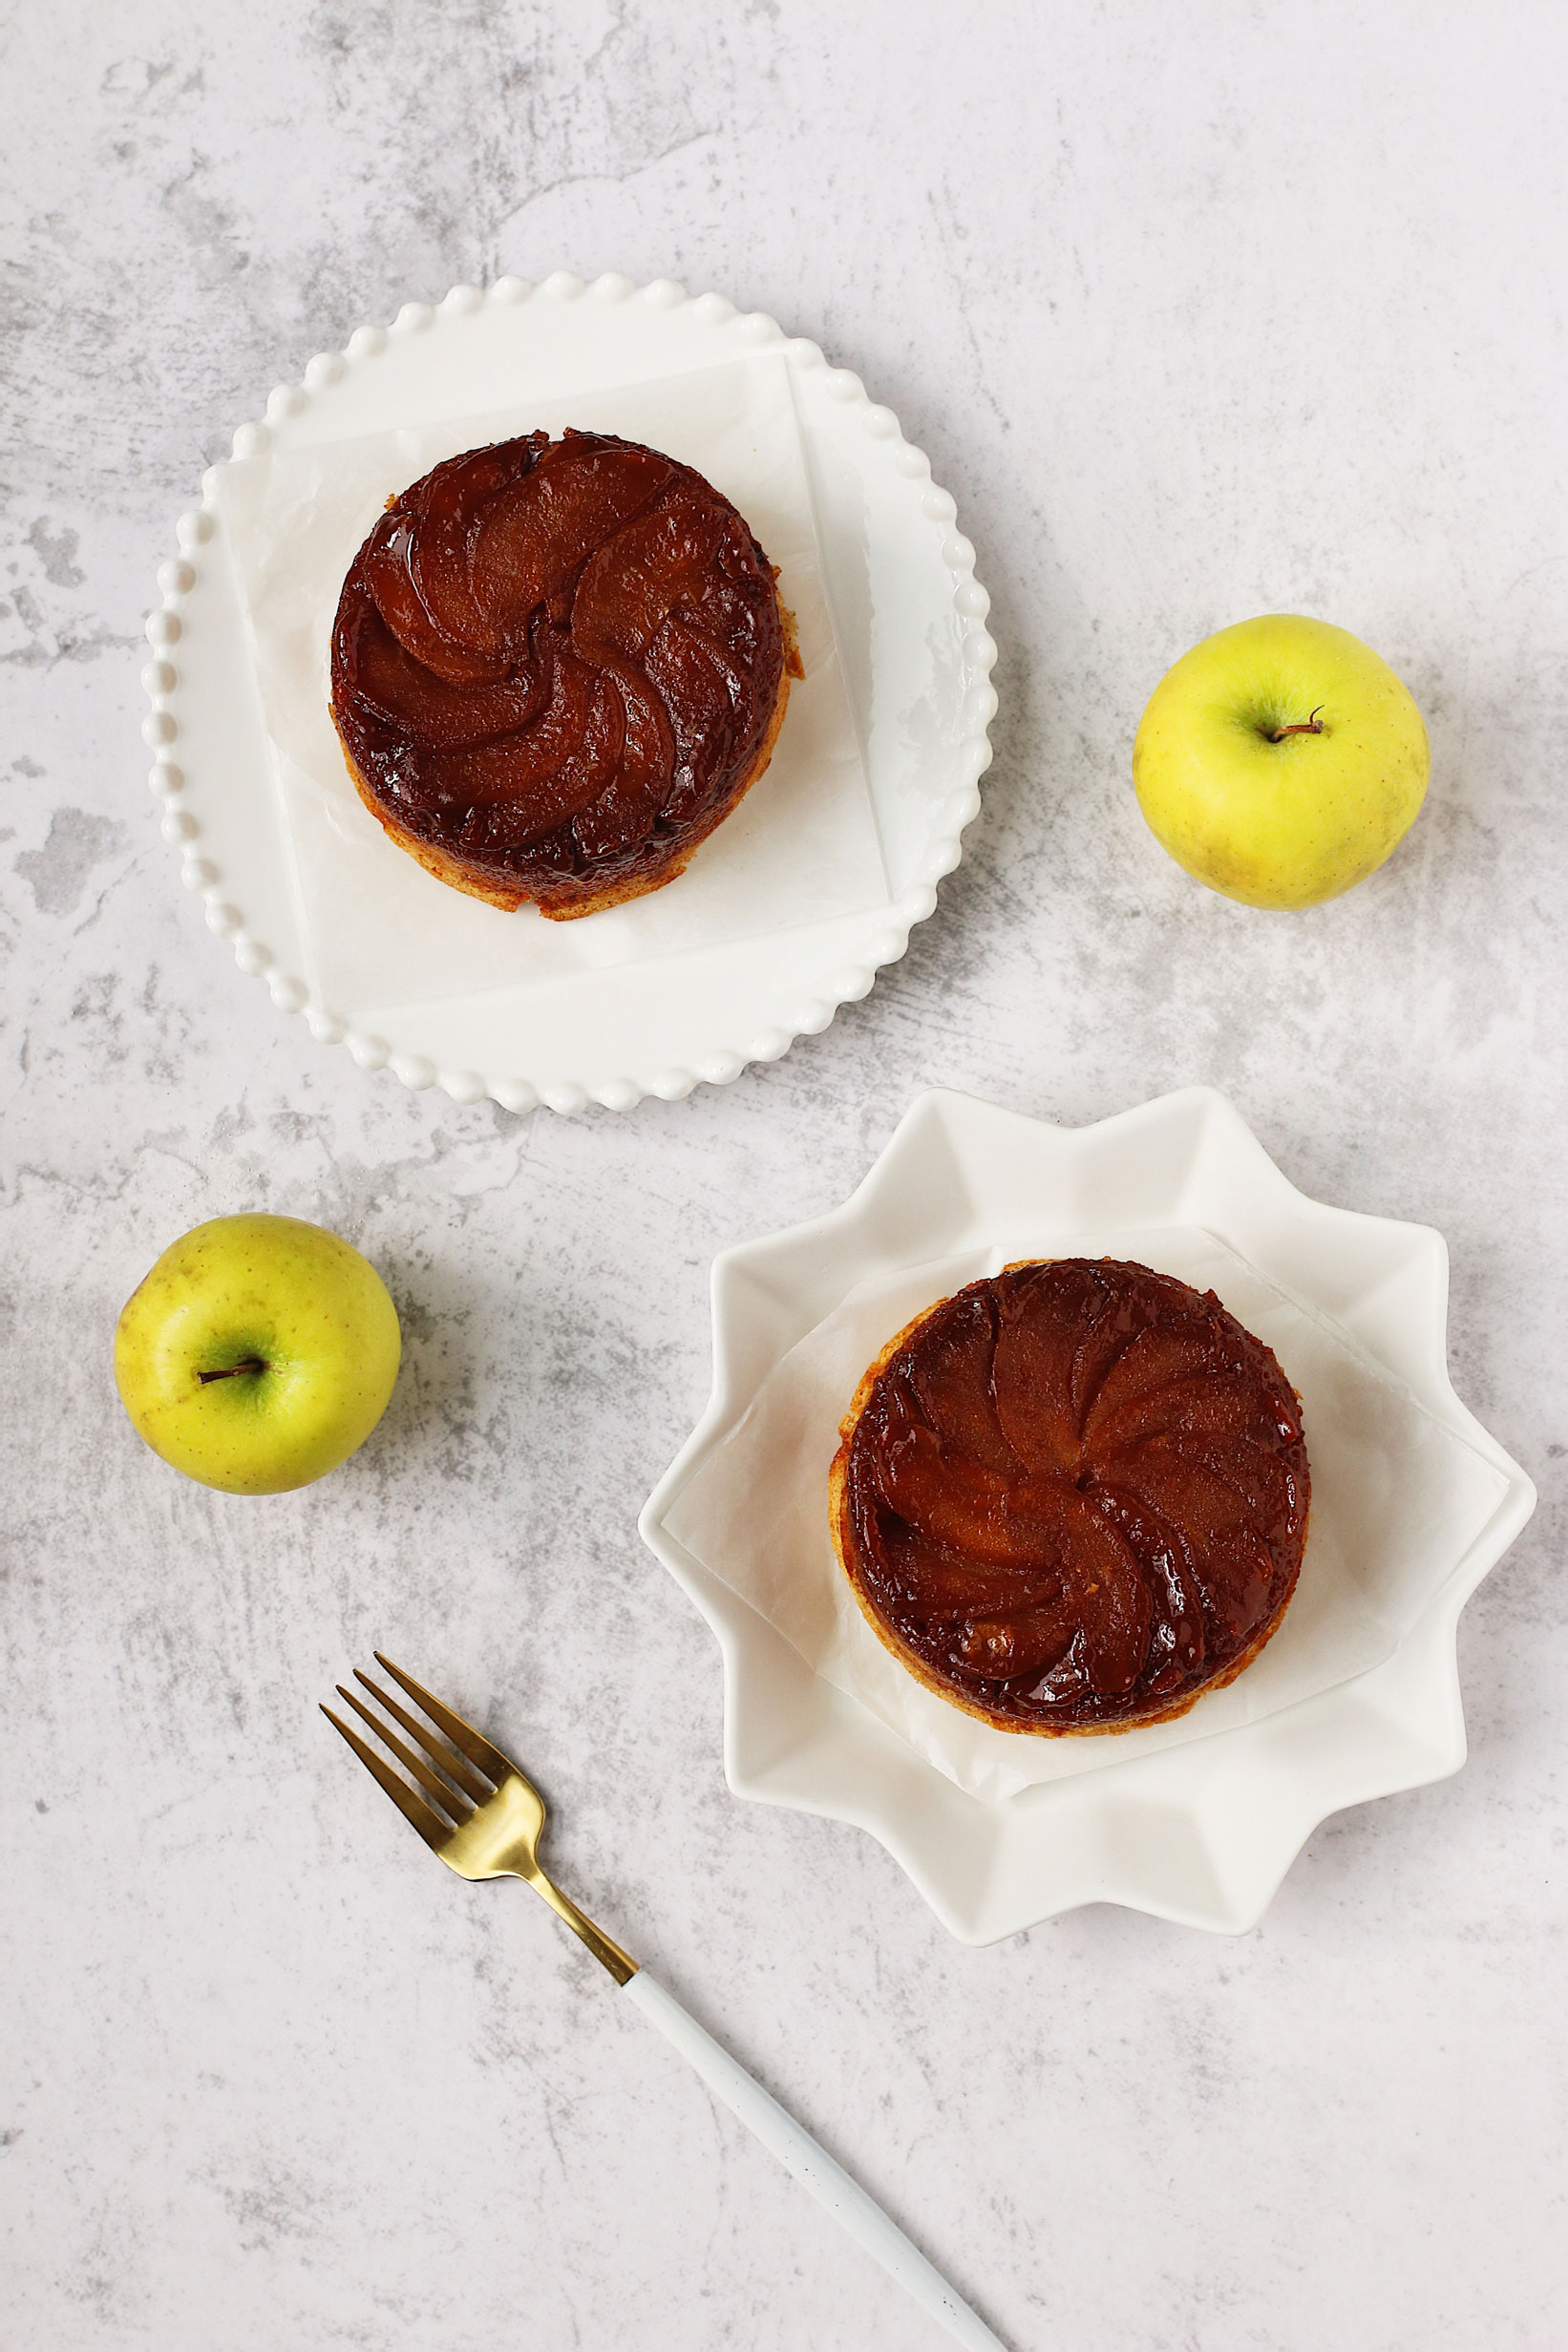 herbakinglab-caramel-apple-upside-down-cake